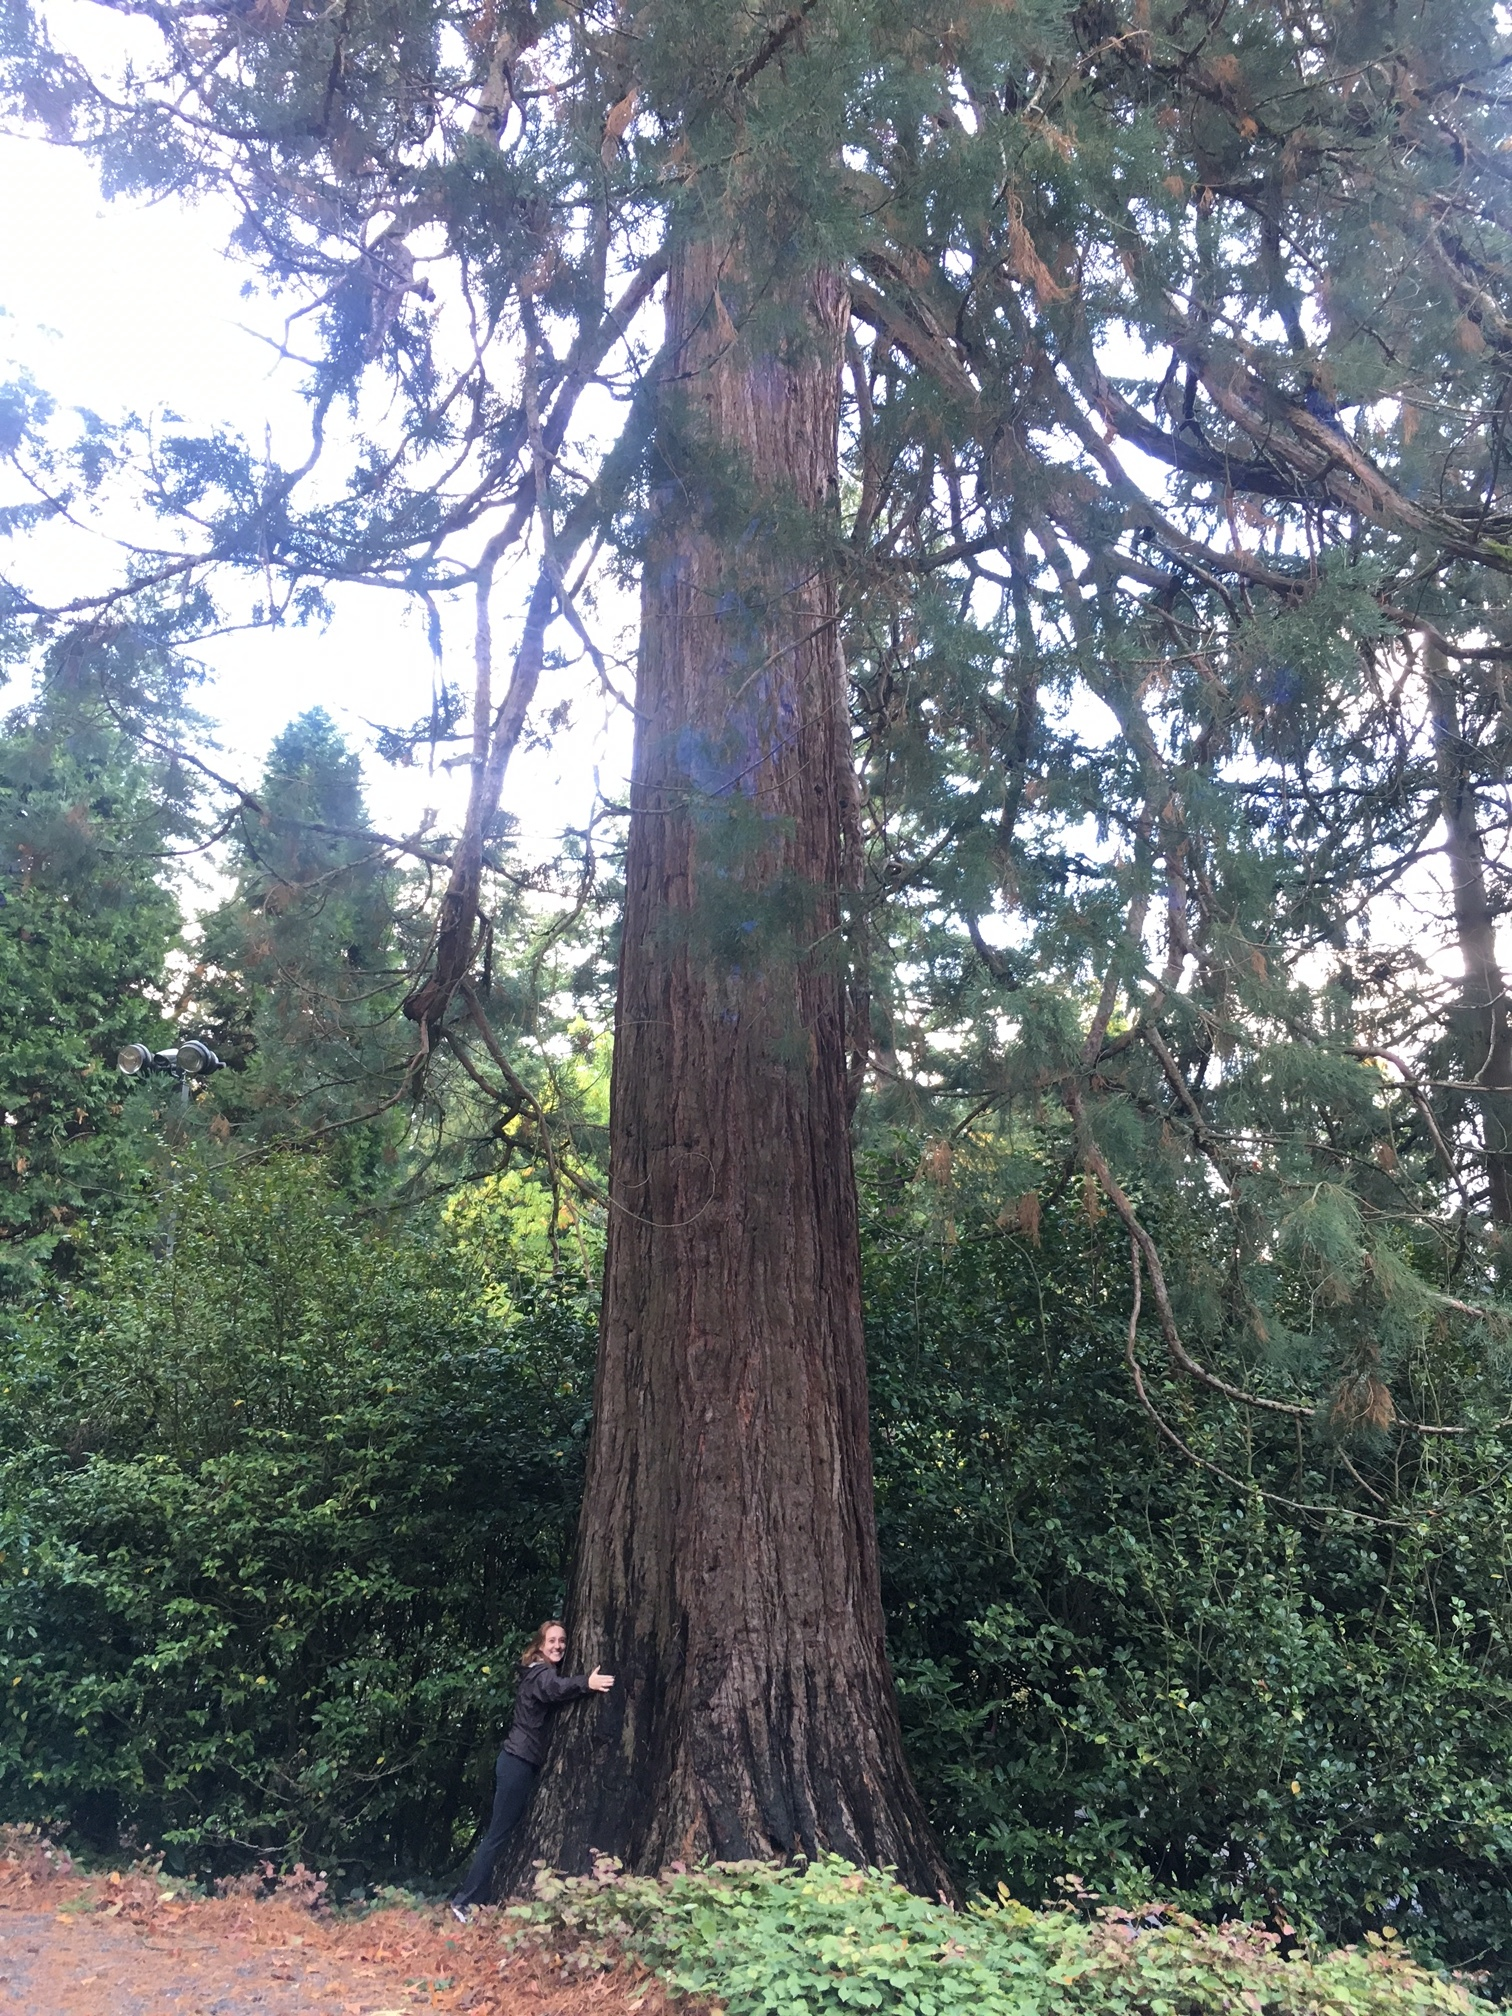 Samantha hugging an old growth tree in Portland's Rose Garden.